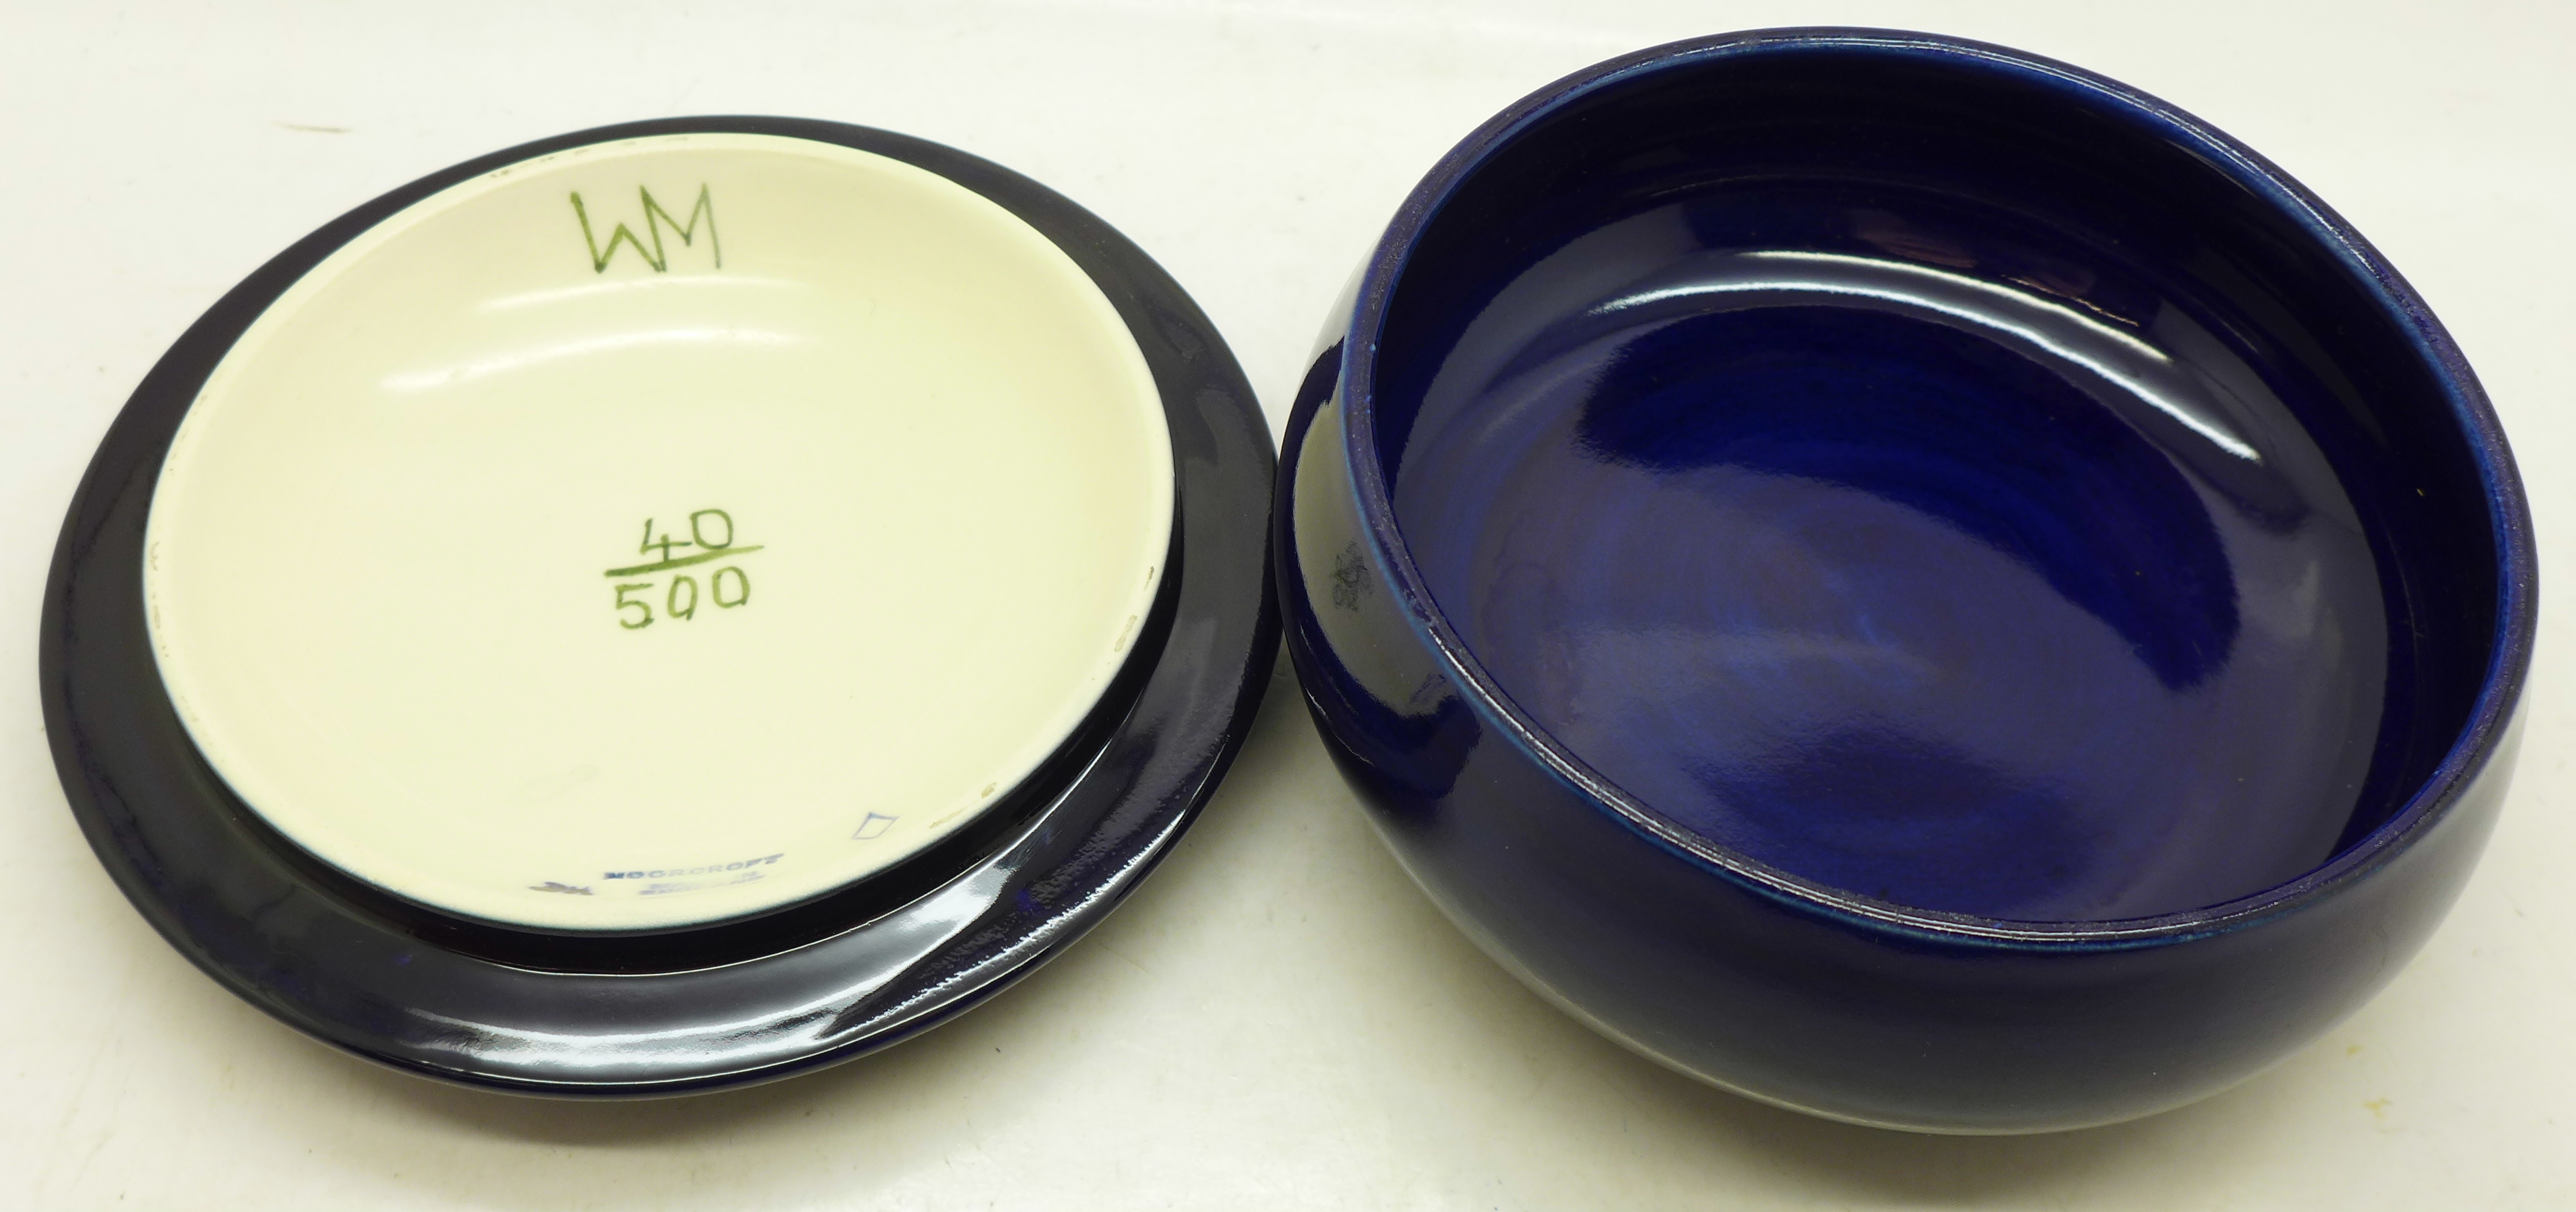 A Moorcroft Limited Edition lidded dish, 40/500, 122mm diameter - Image 4 of 5